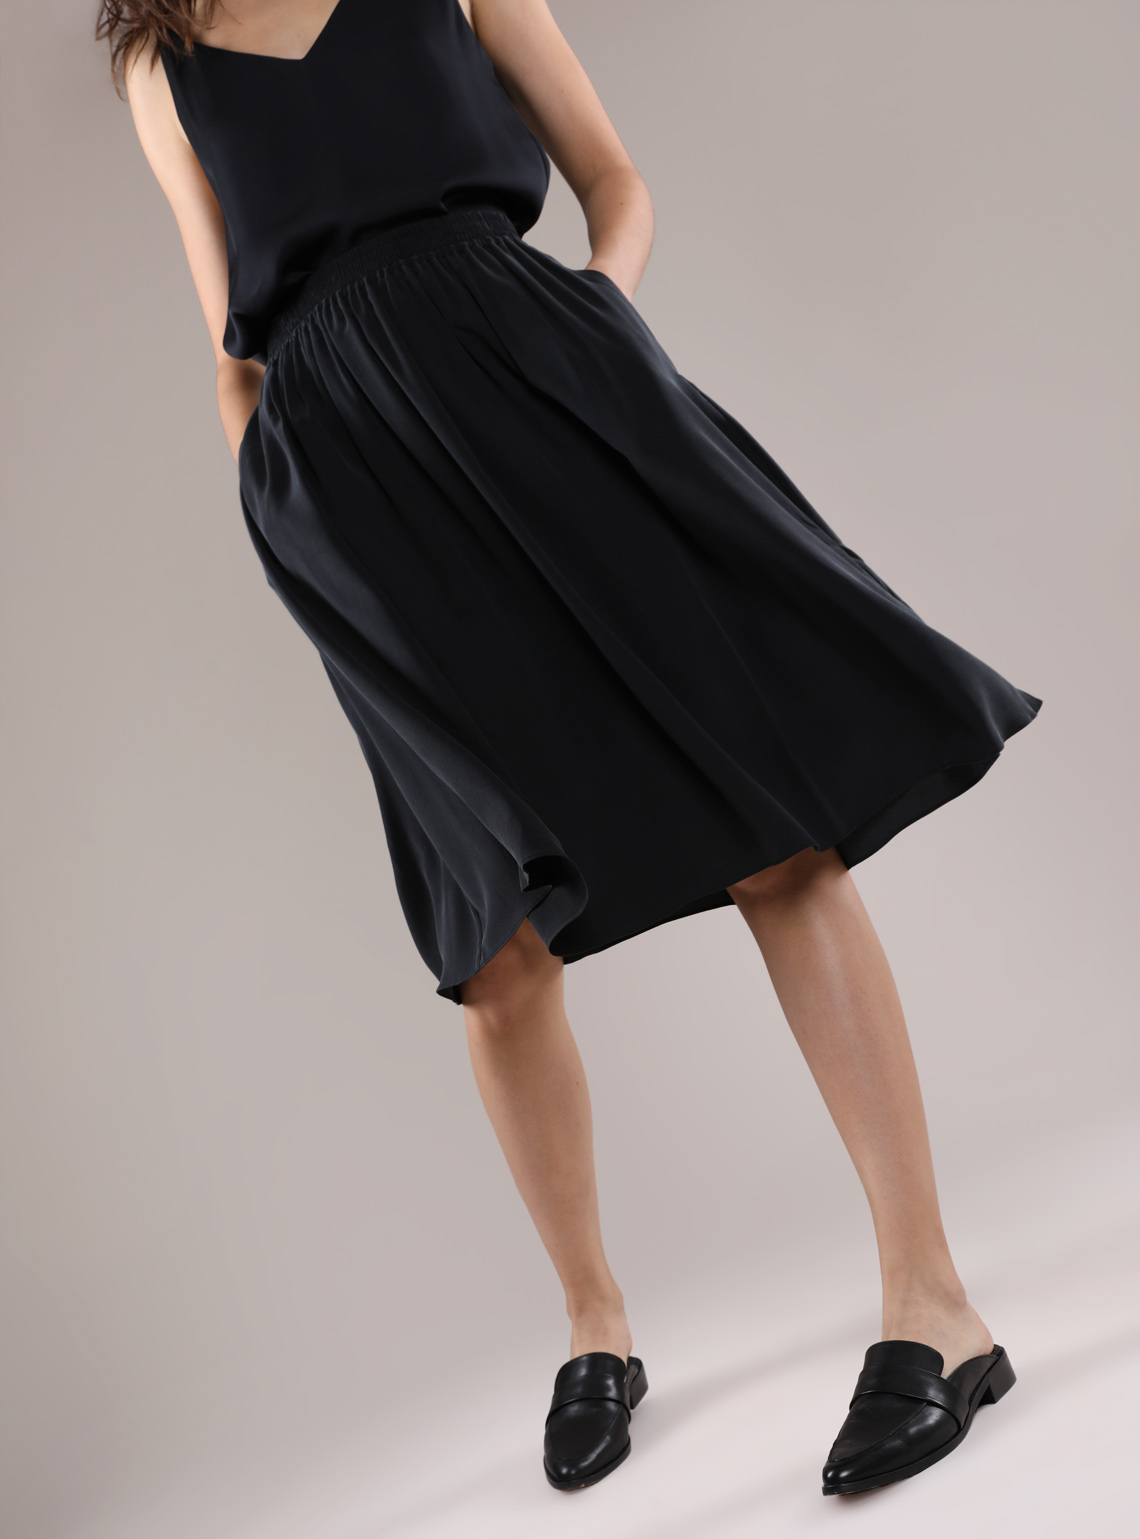 Women's Full Skirt